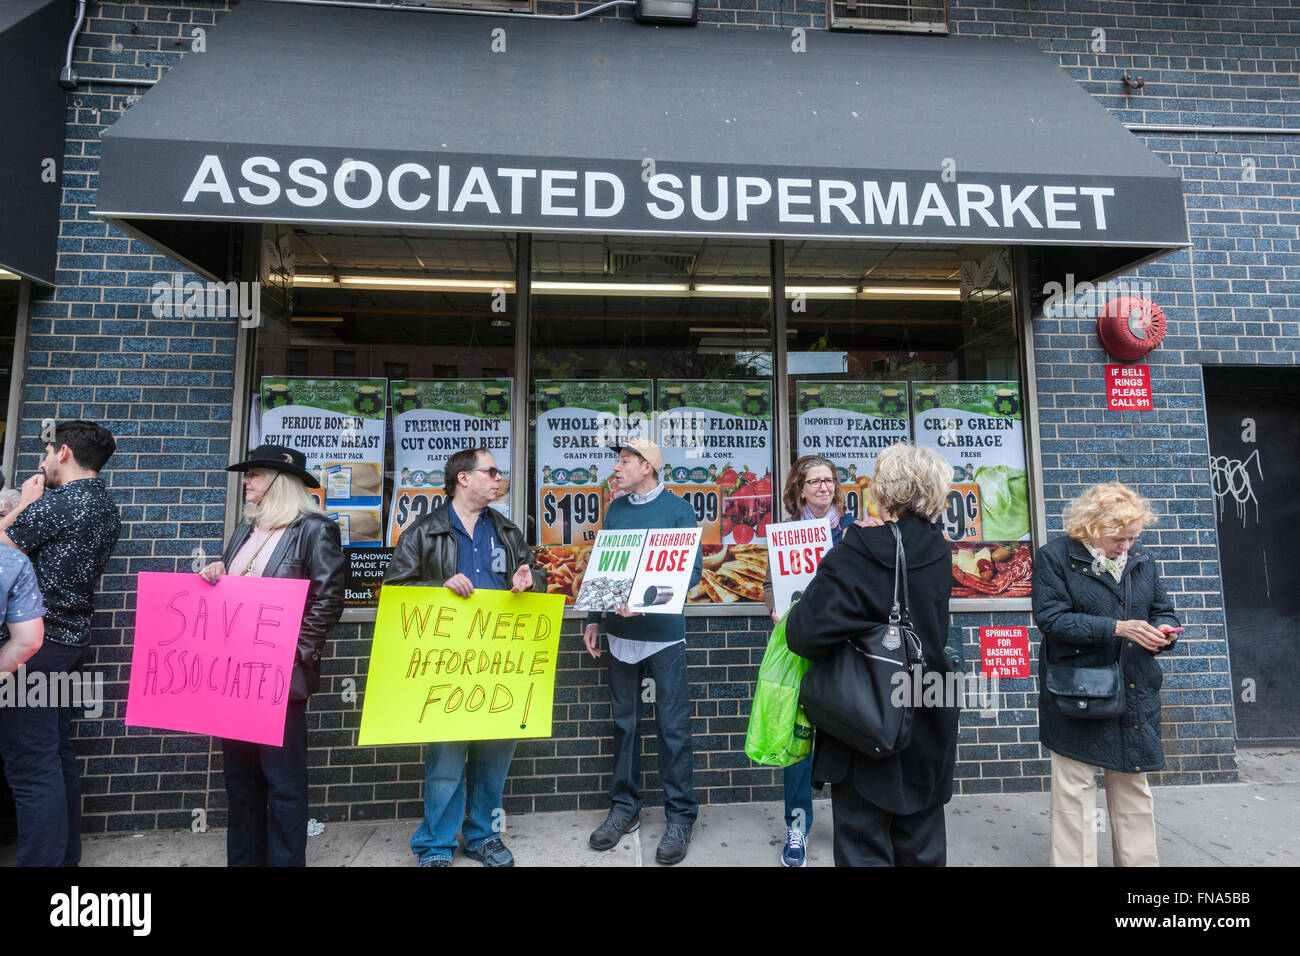 Several hundred residents of of the Chelsea and Greenwich Village neighborhoods rally in front of the Associated - Stock Image